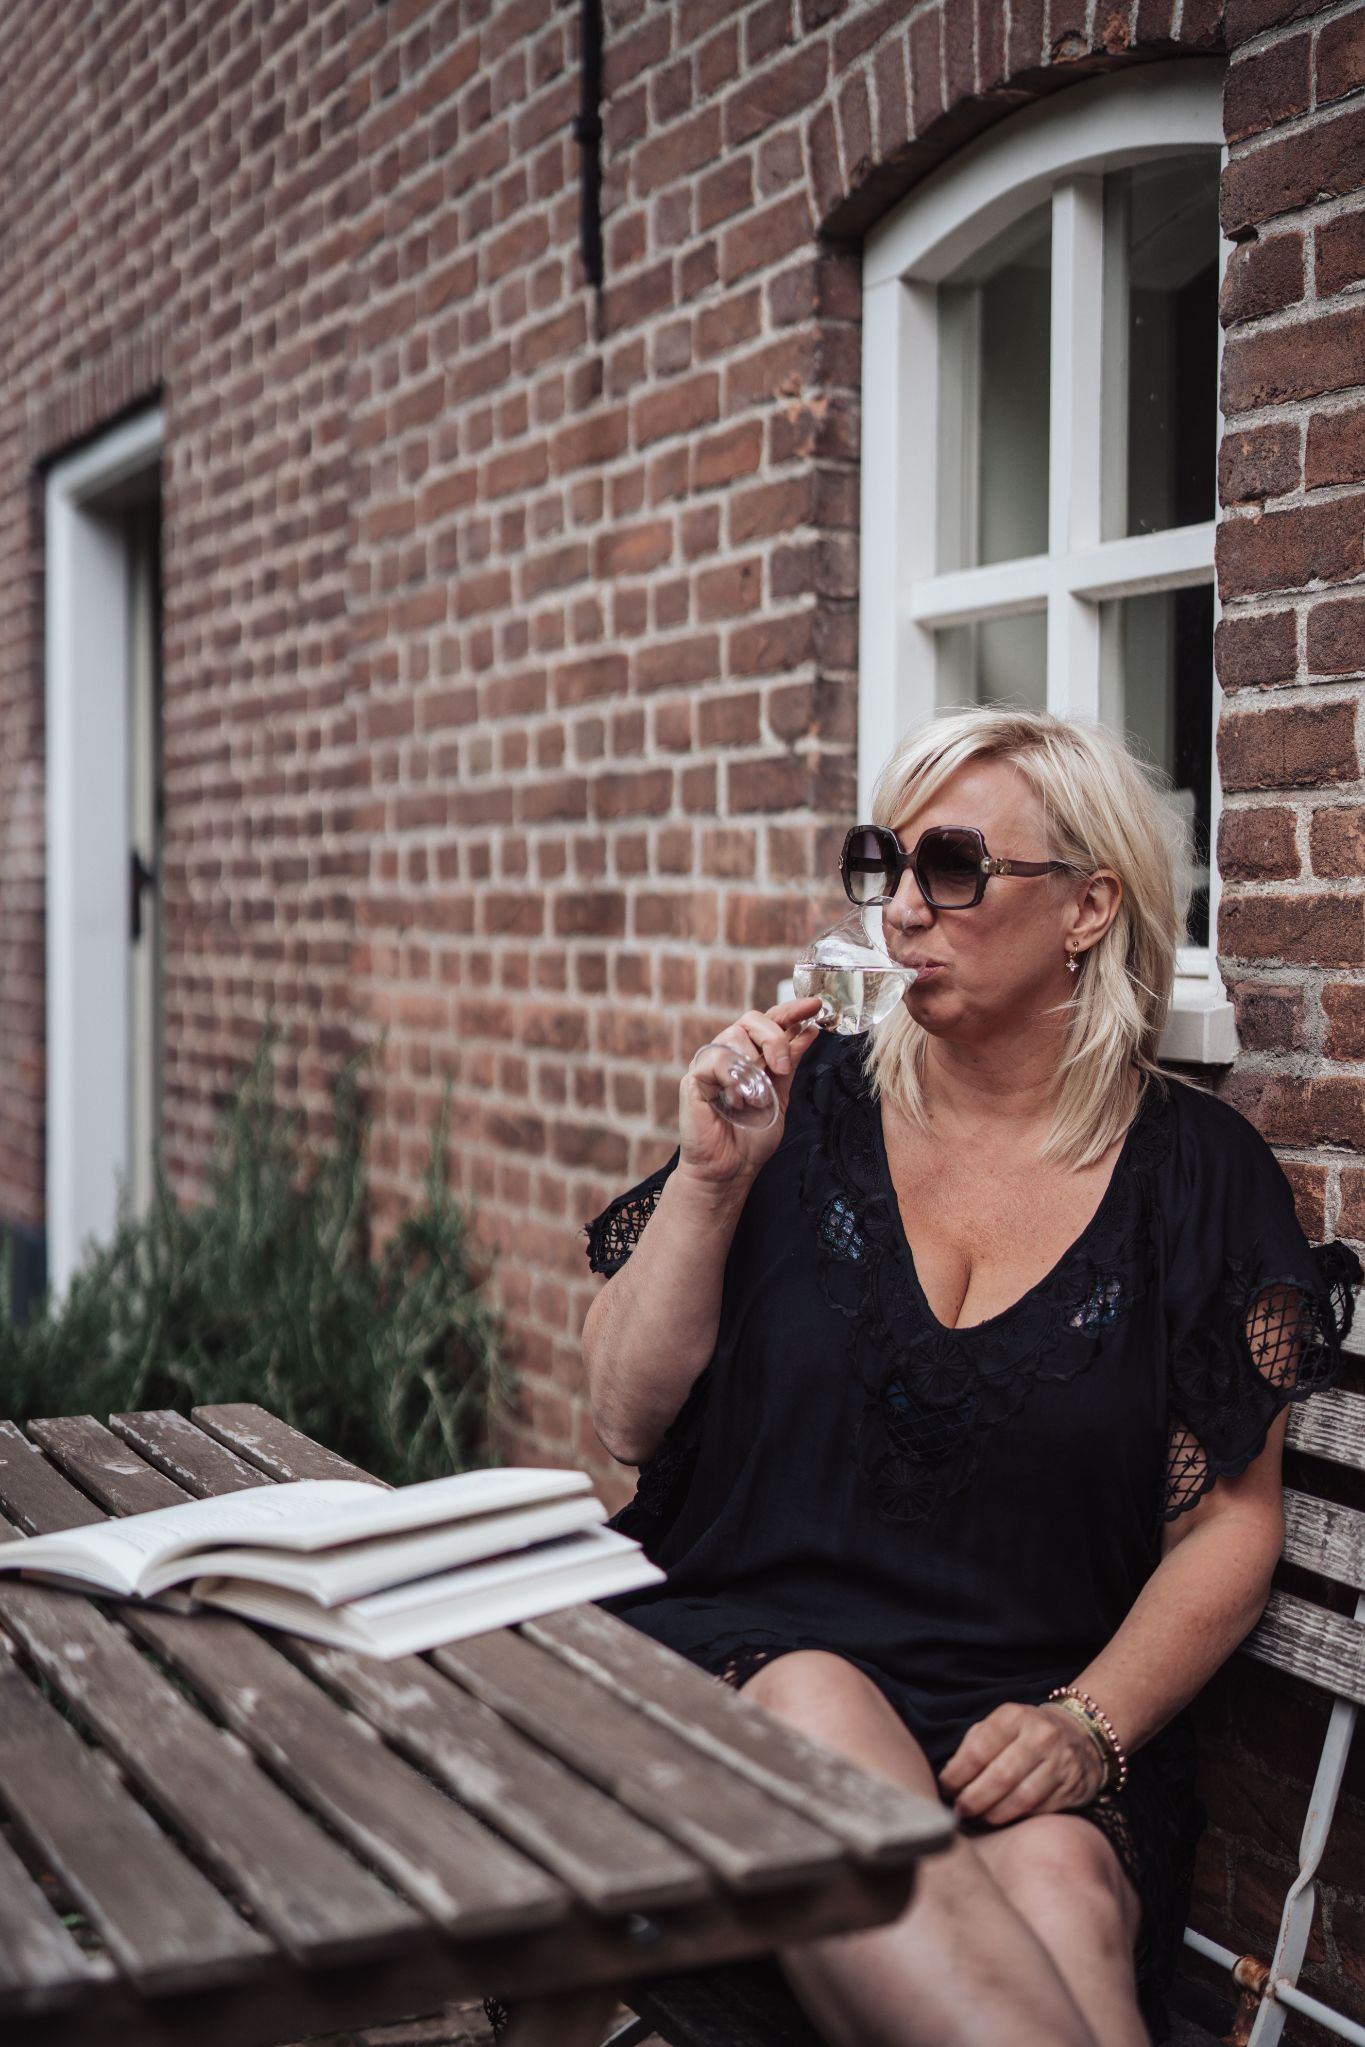 Smart Girls Ellen Joosten Relax Work Hard Play Hard